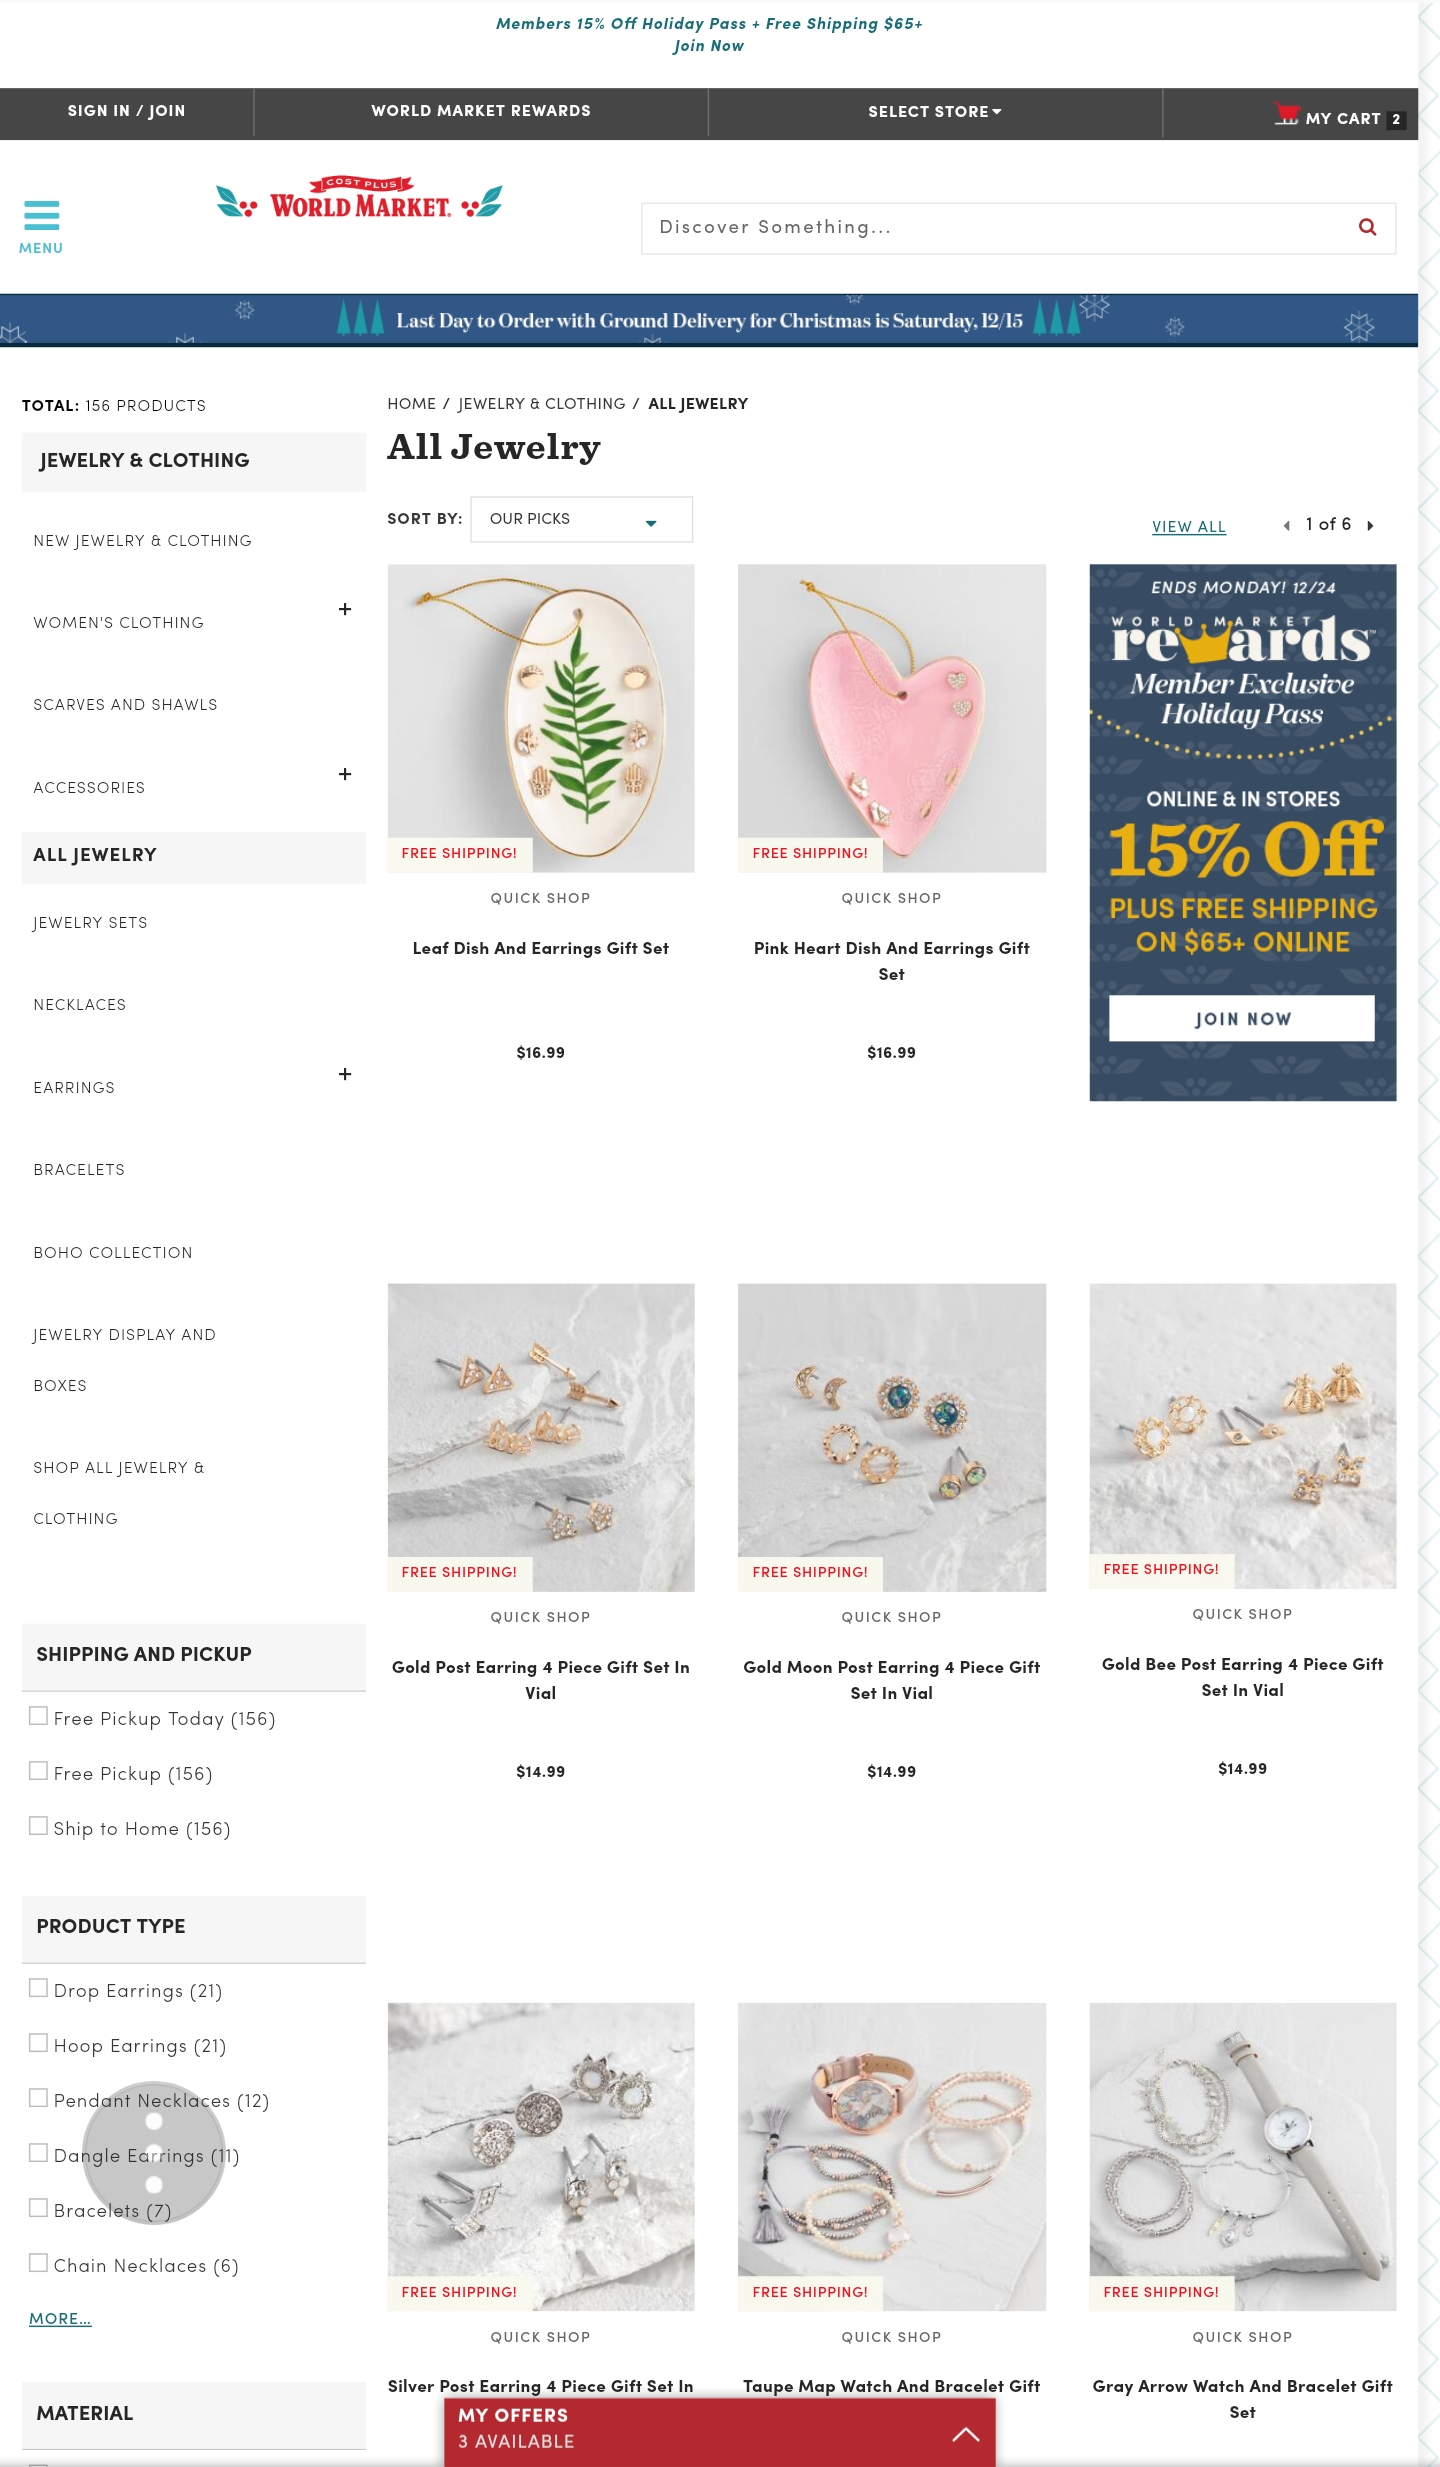 Top place to buy cheap jewelry and affordable jewellery from. Low-priced jewellery for the simple jewelry lovers and bold jewelry. Budget-friendly jewellery for all. Your affordable jewelry gift guide. Gift guide for her. Stocking stuffers for her. Christmas gift guide for everyone